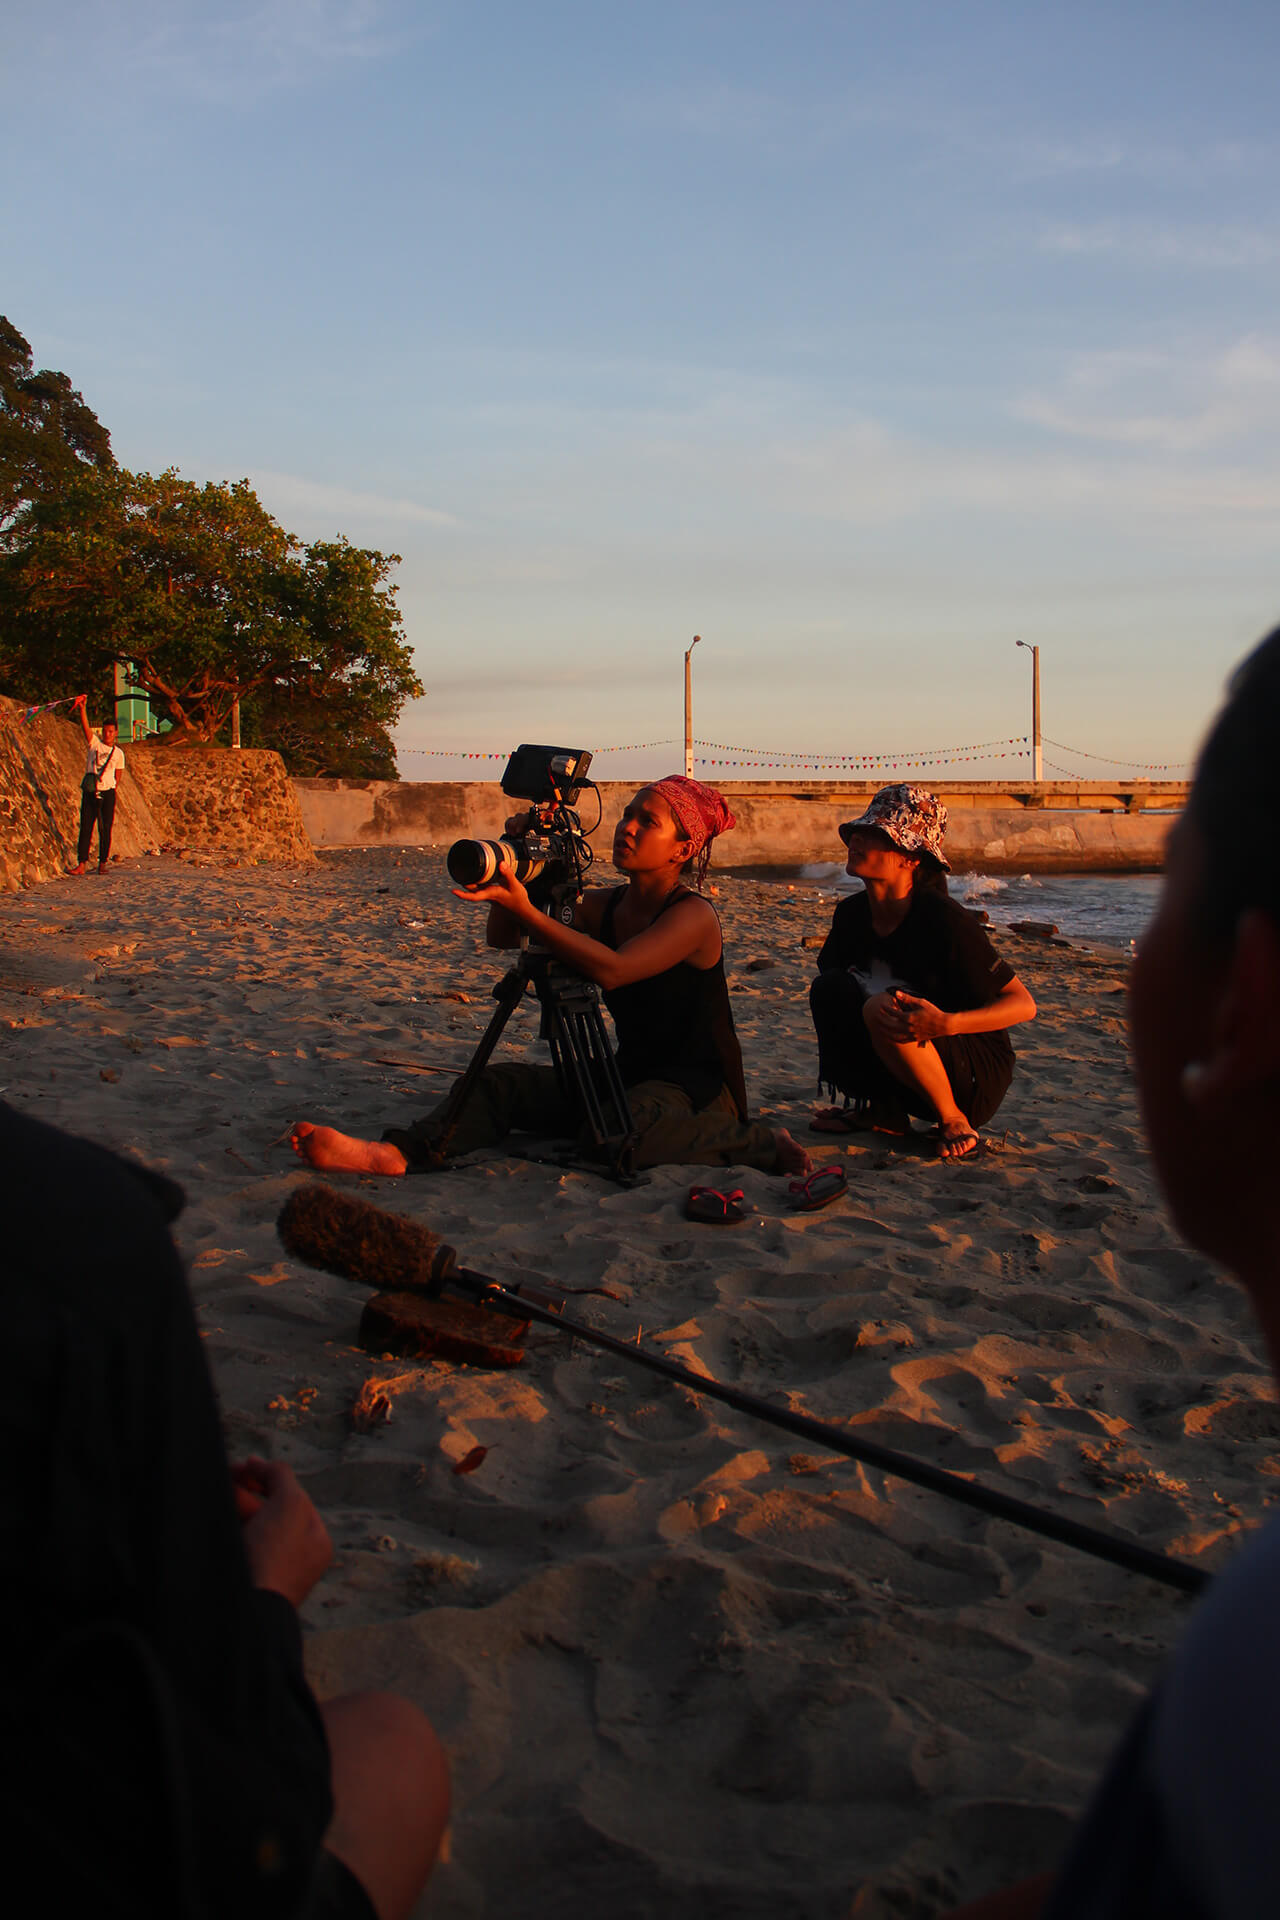 Behind the scenes shot of Ice Idanan shooting by the beach.